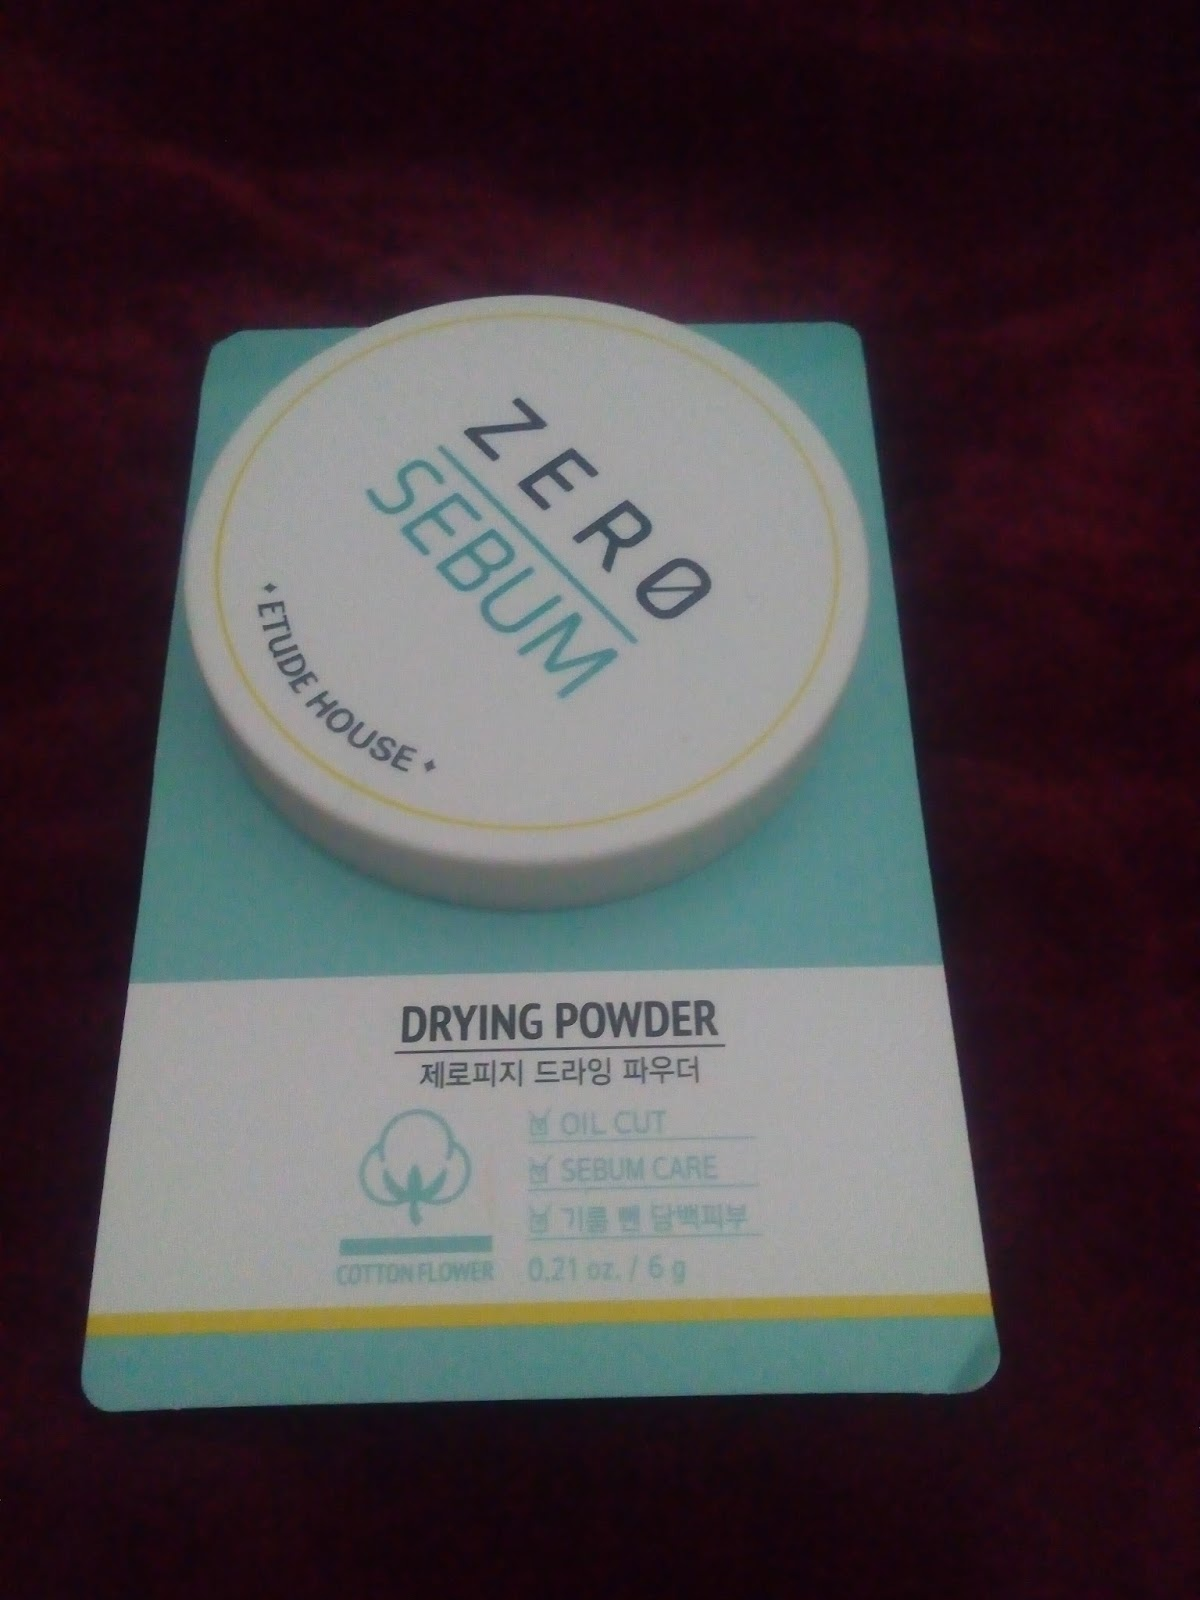 Remembered Review Etude House Zero Sebum Drying Powder New Packaging Absorbs Only And Excessive Oil Helps Get Rids Of Skin Look Clean Clear Free From 5 Harmful Ingredients Such As Talc